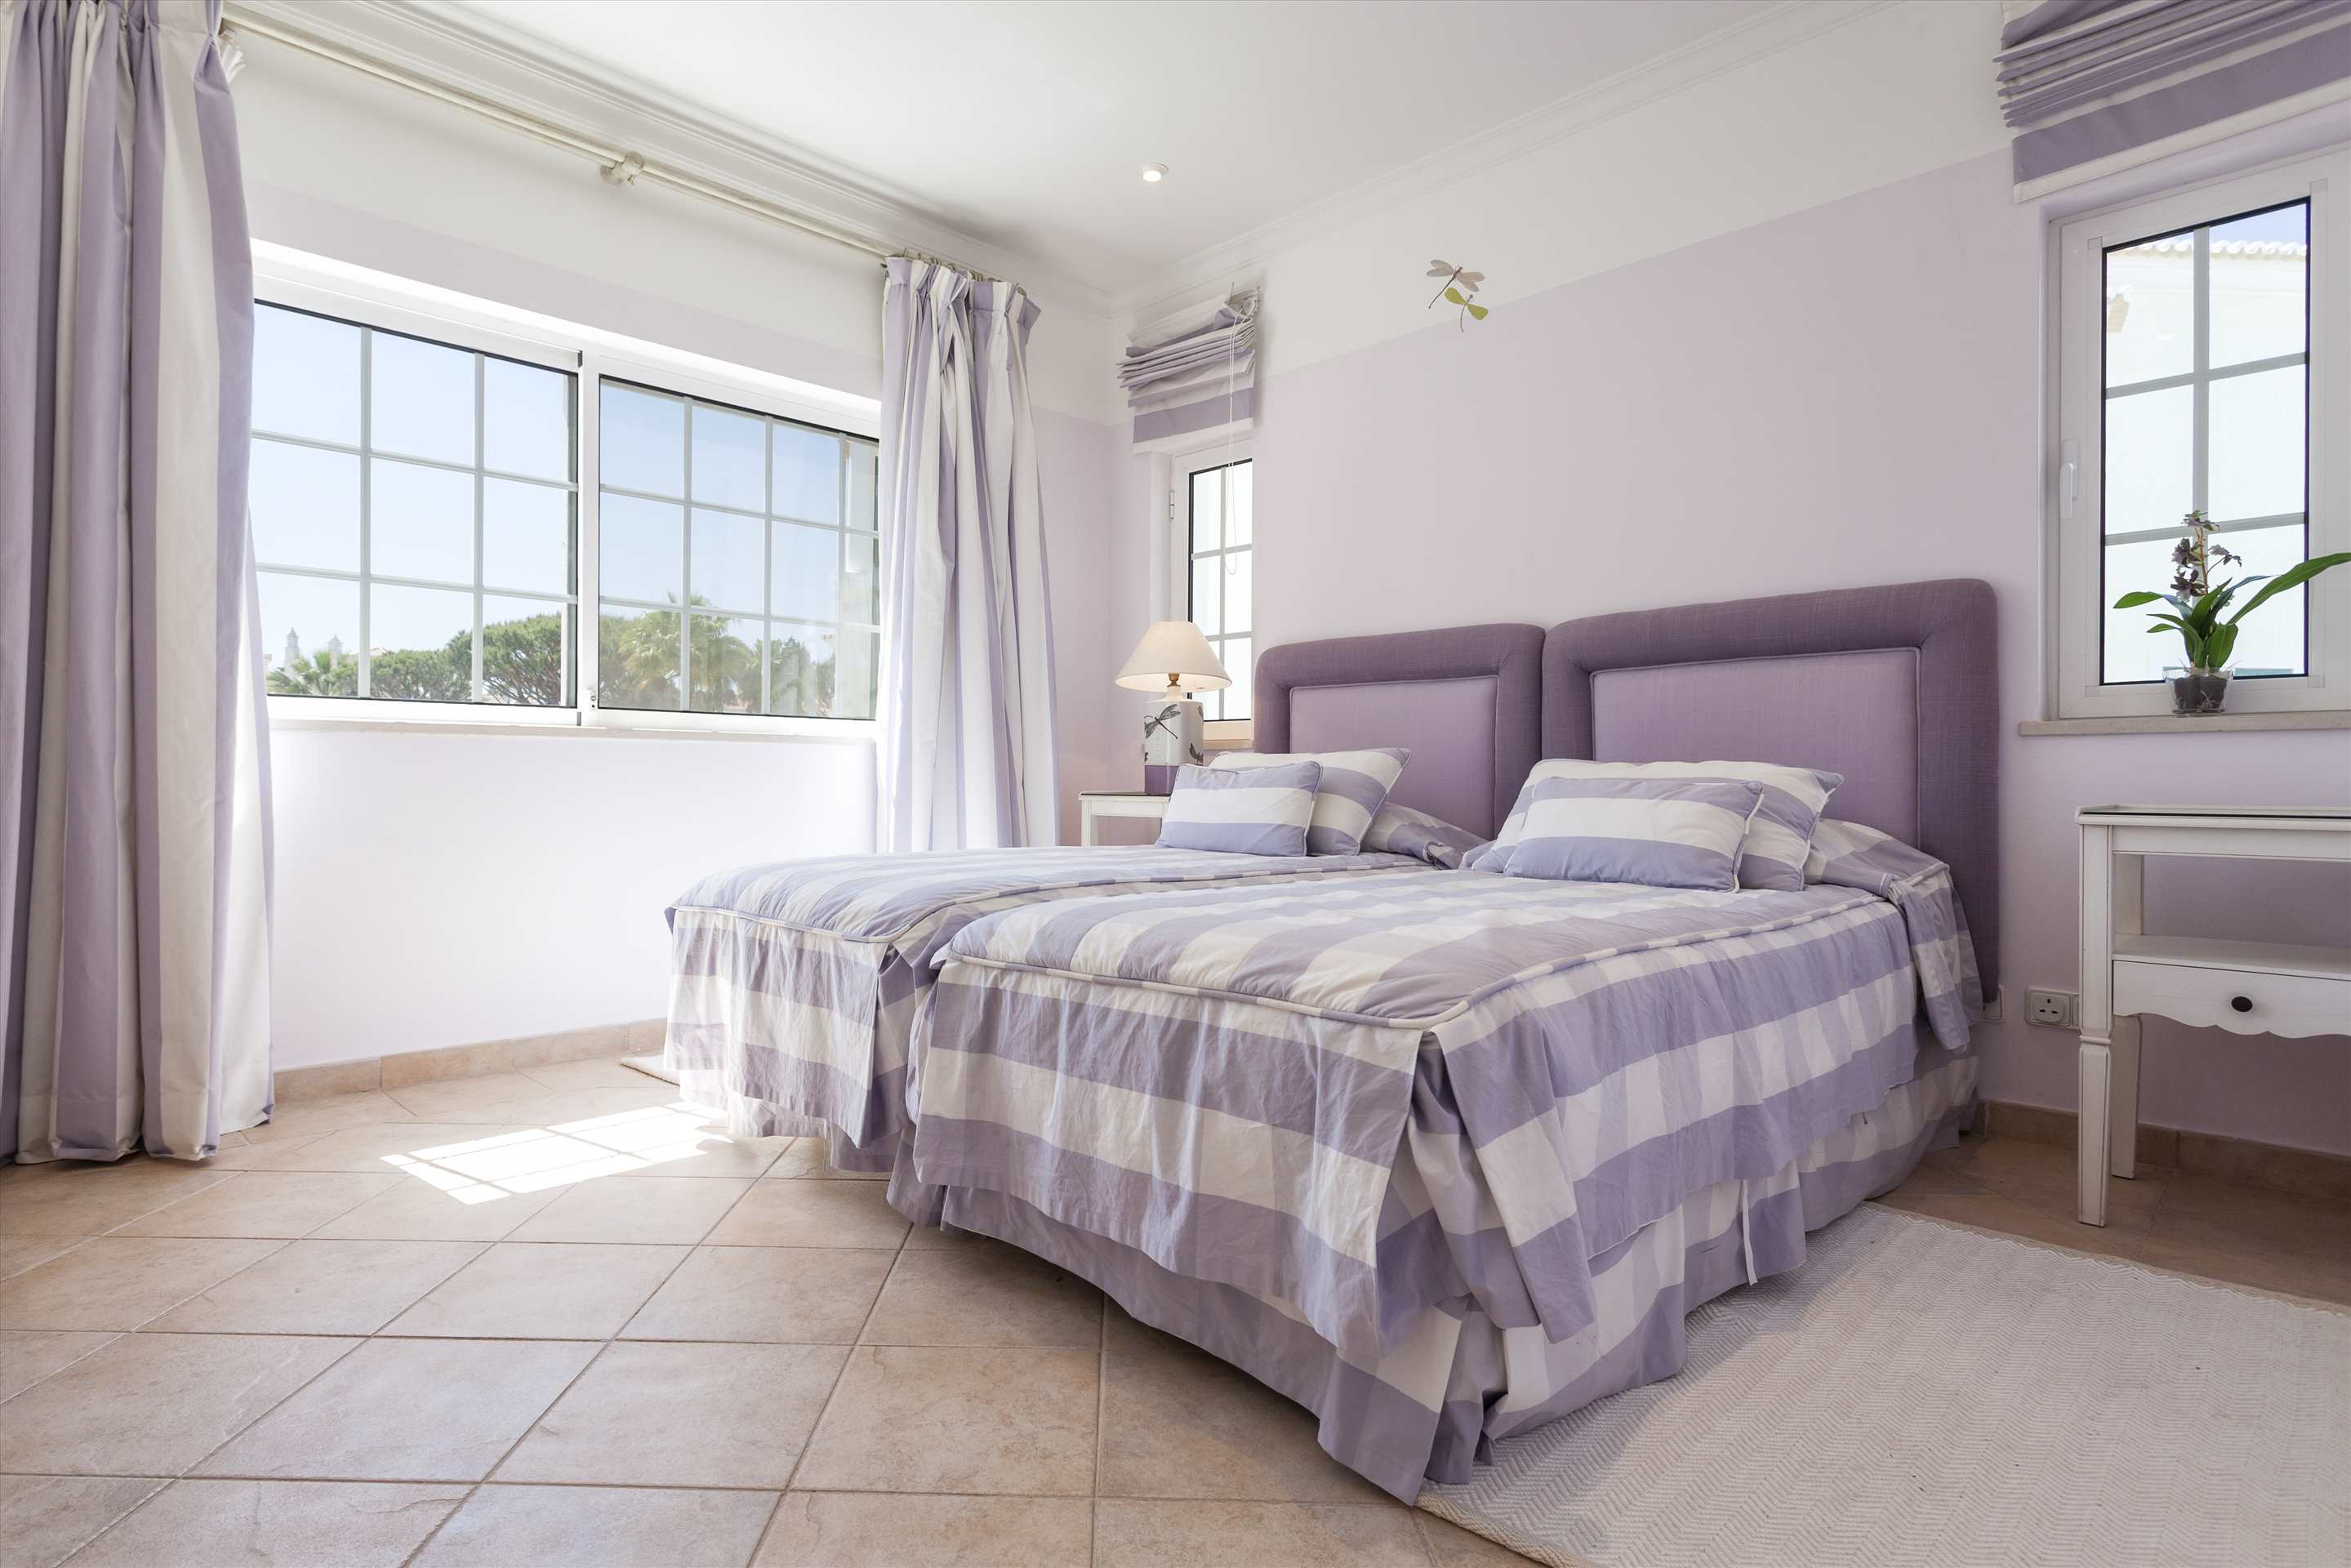 Villa Catarina, 3 bedroom apartment in Vale do Lobo, Algarve Photo #14